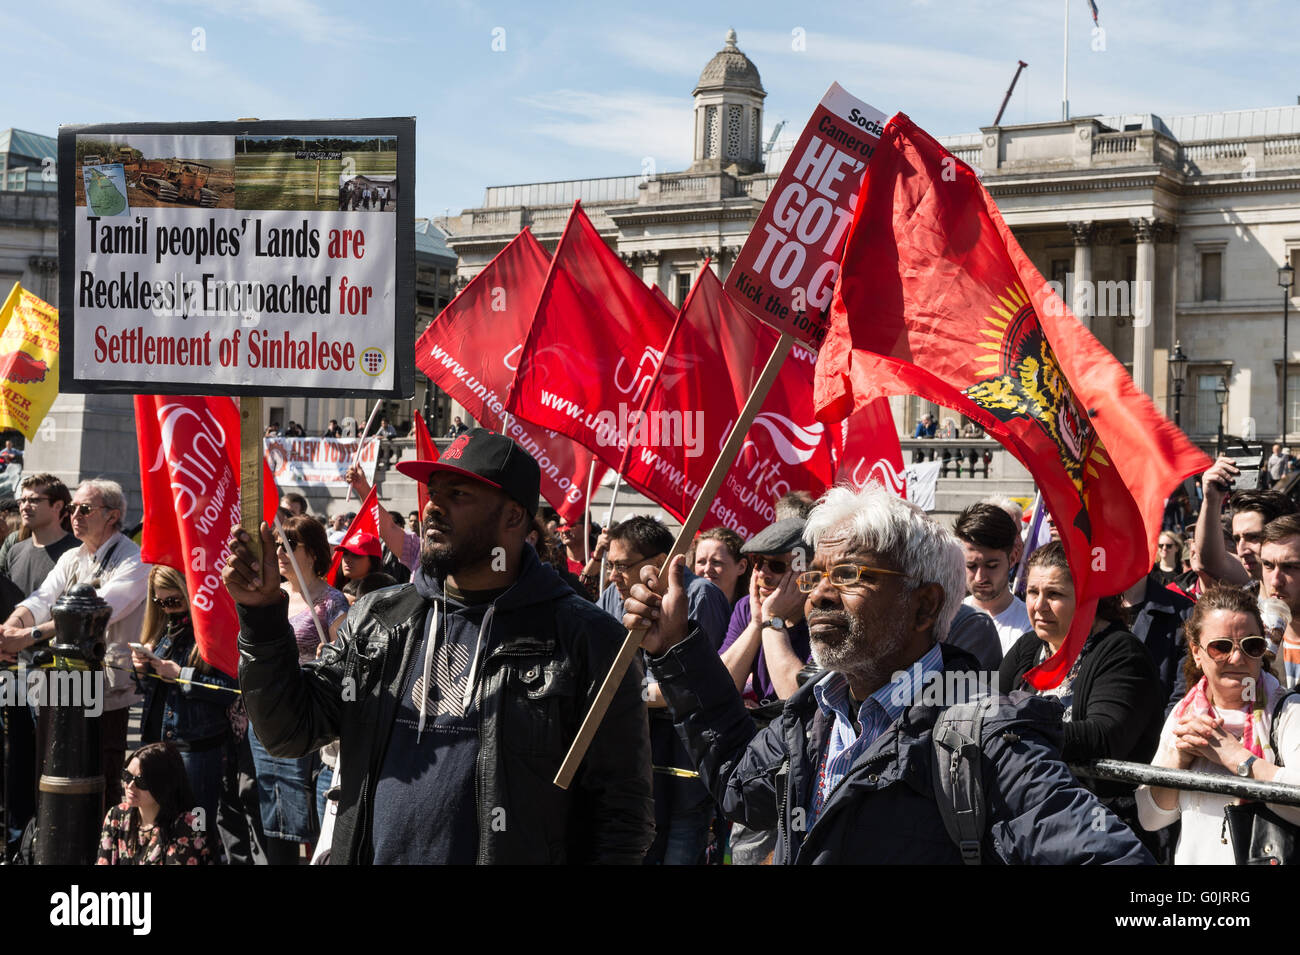 London, UK. 1st May 2016. Workers and trade unions' activists from Britain and around the world gathered at - Stock Image